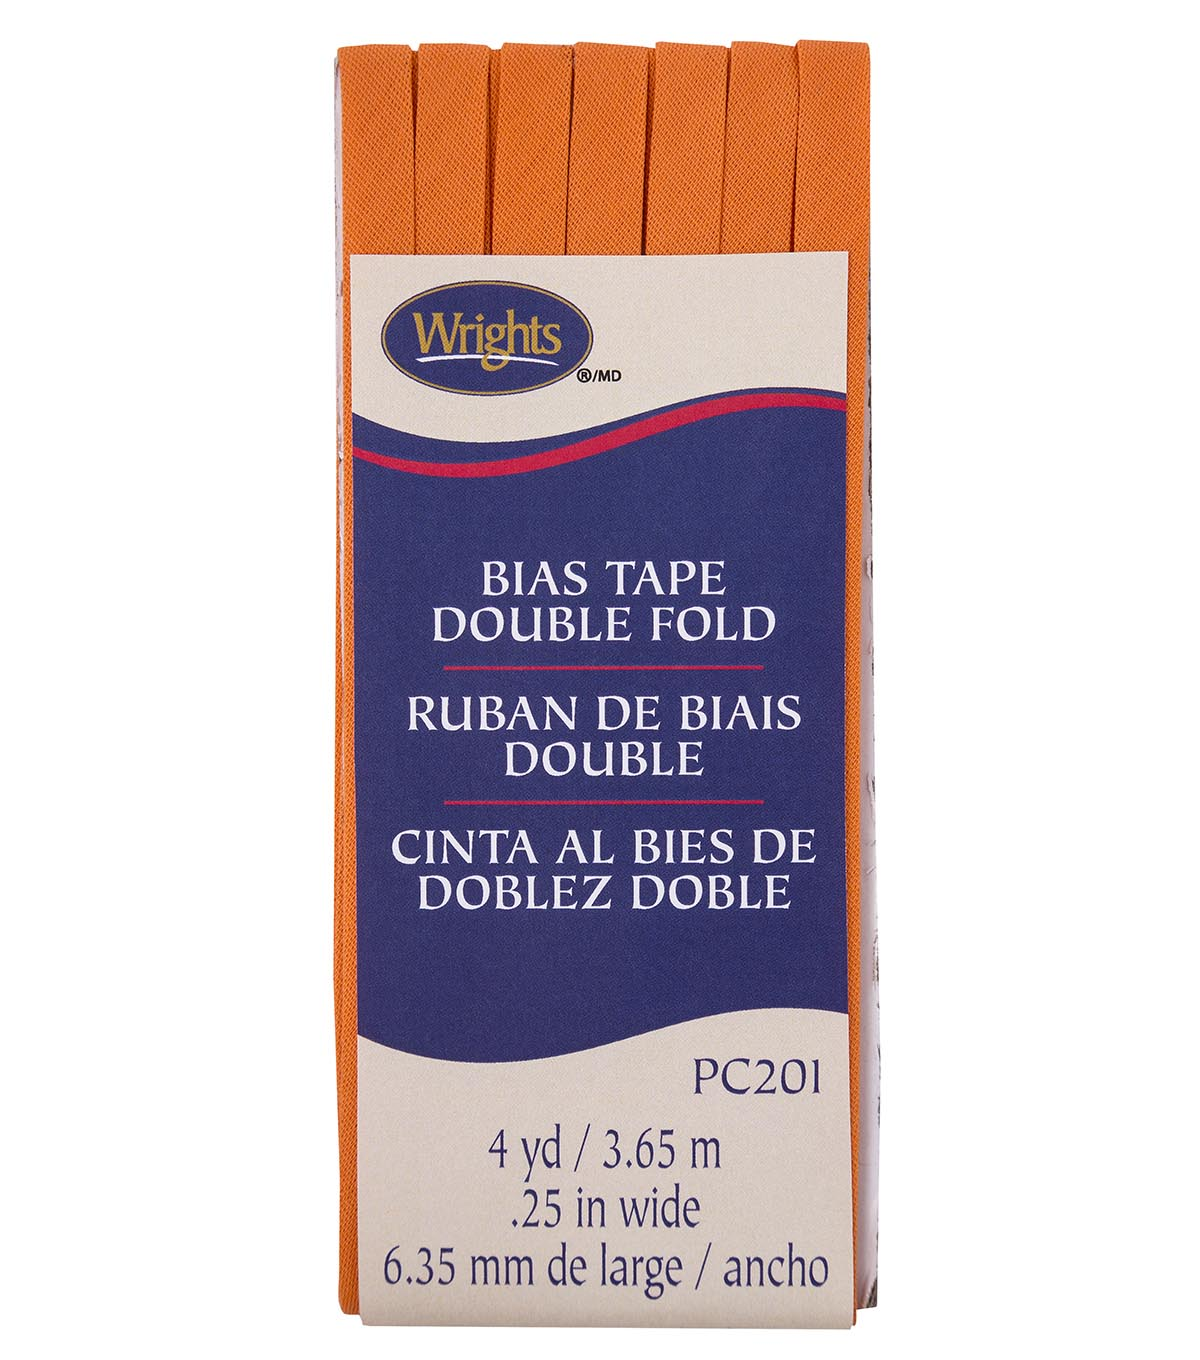 Wrights Double Fold Bias Tape 1/4\u0027\u0027x4 yds-Orange Peel